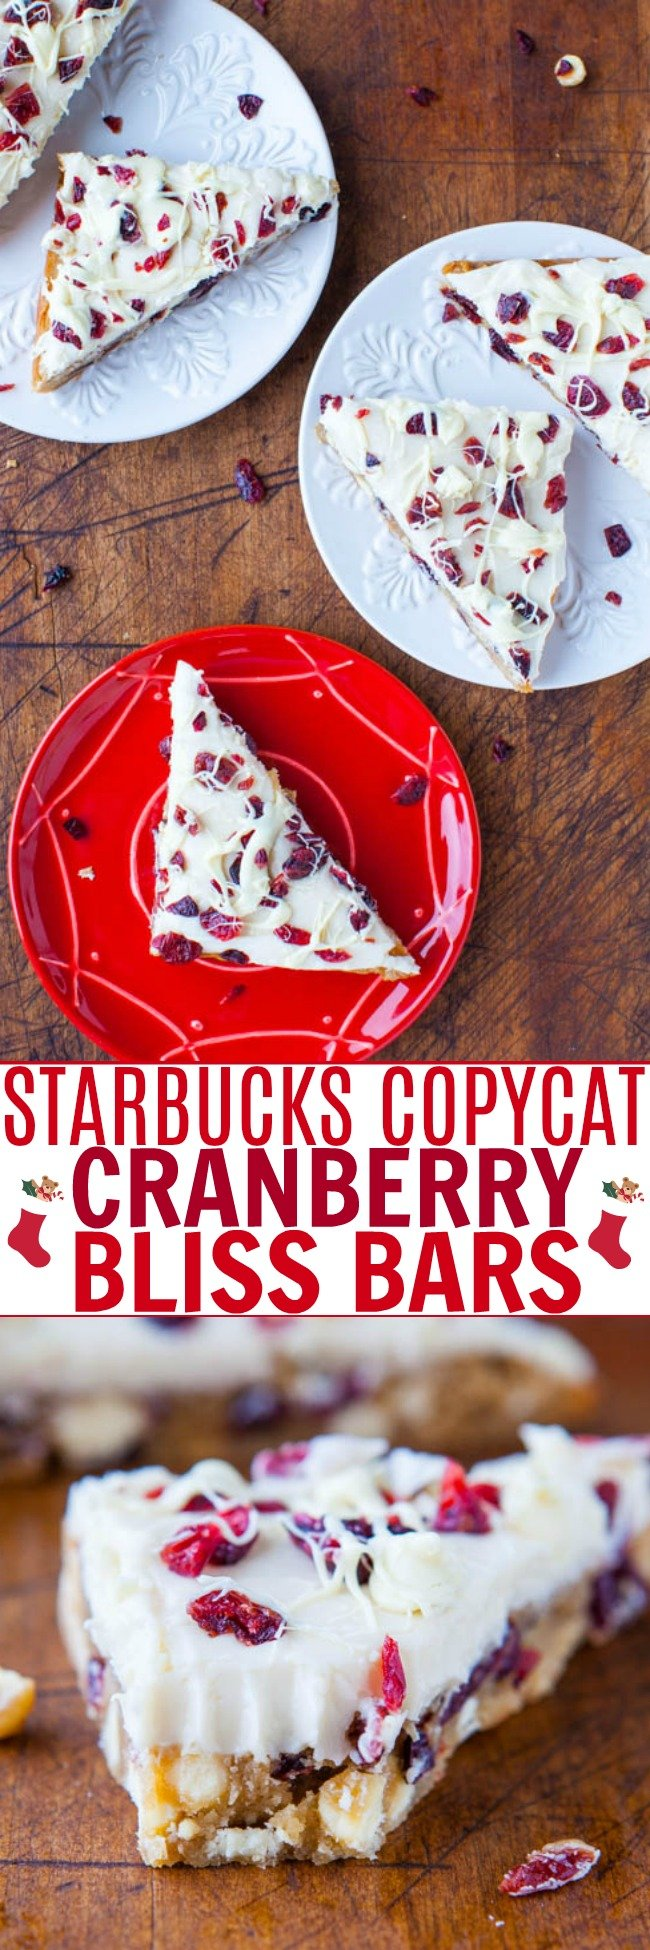 Copycat Starbucks Cranberry Bliss Bars— For anyone who loves the Starbucks version, these are can be made year-round at home for pennies on the dollar and taste every bit as fabulous and then some!! I like to call themBetter-Than-StarbucksCranberry Bliss Bars!!